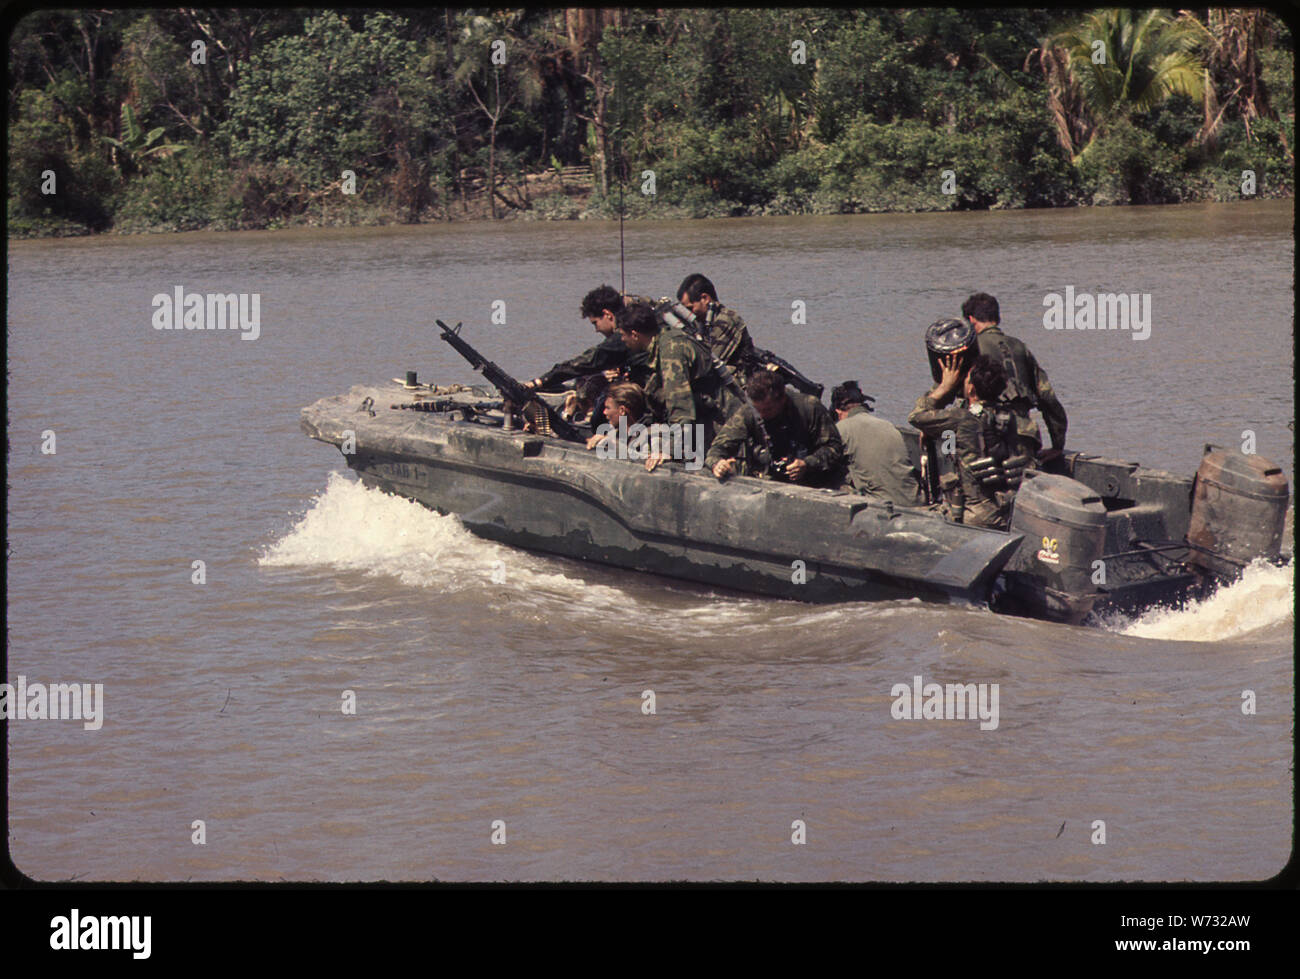 Assault Boat Stock Photos & Assault Boat Stock Images - Alamy